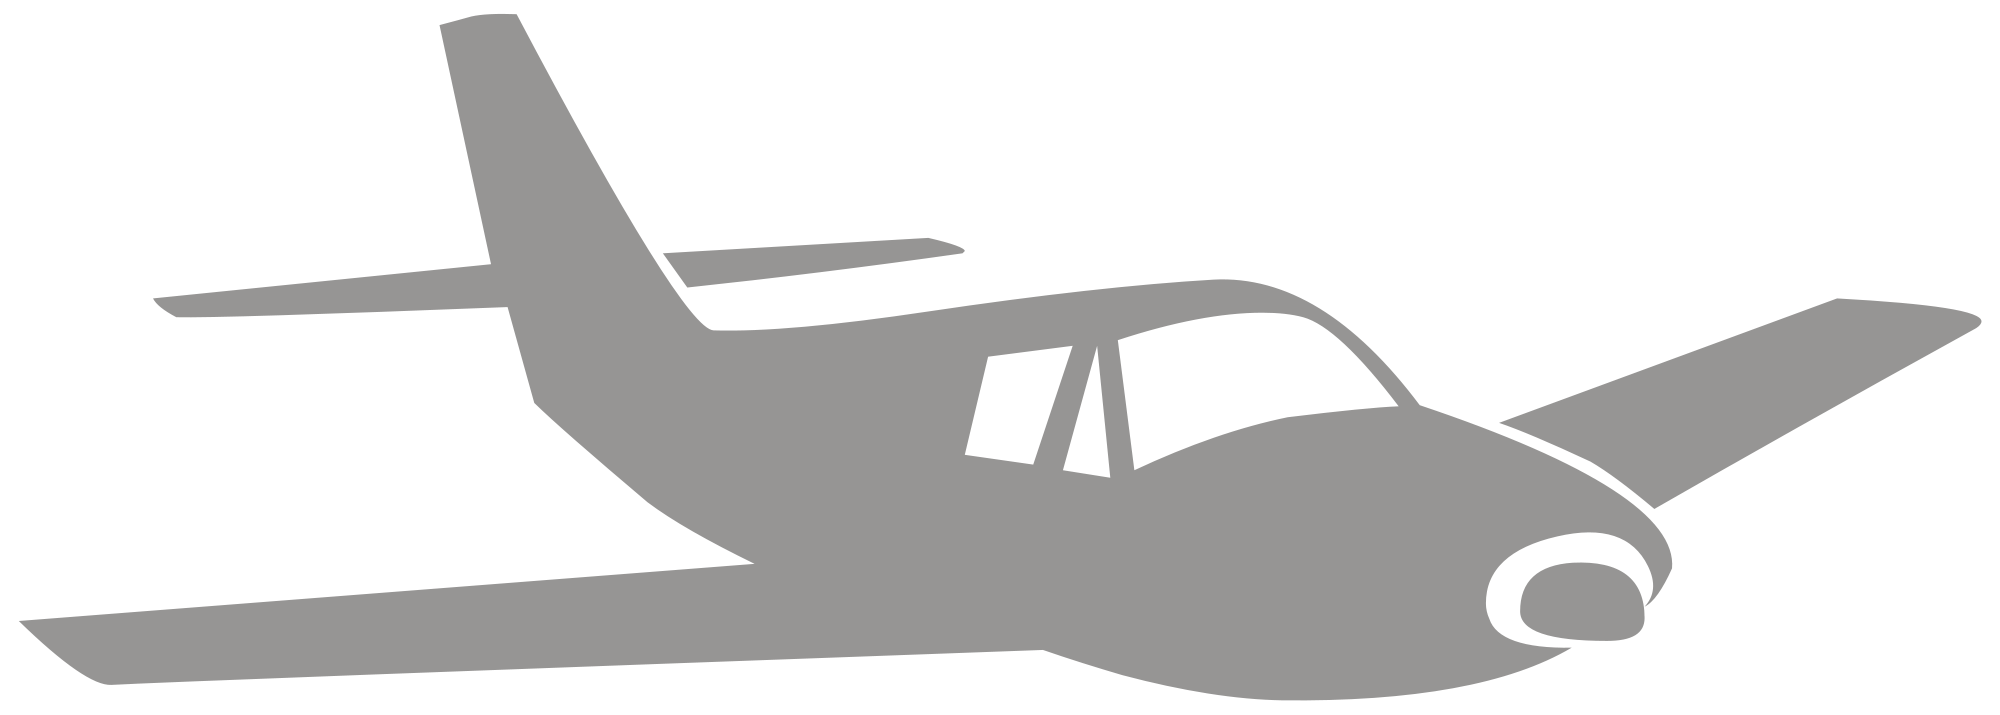 Wing svg airplane. File silhouette r wikimedia